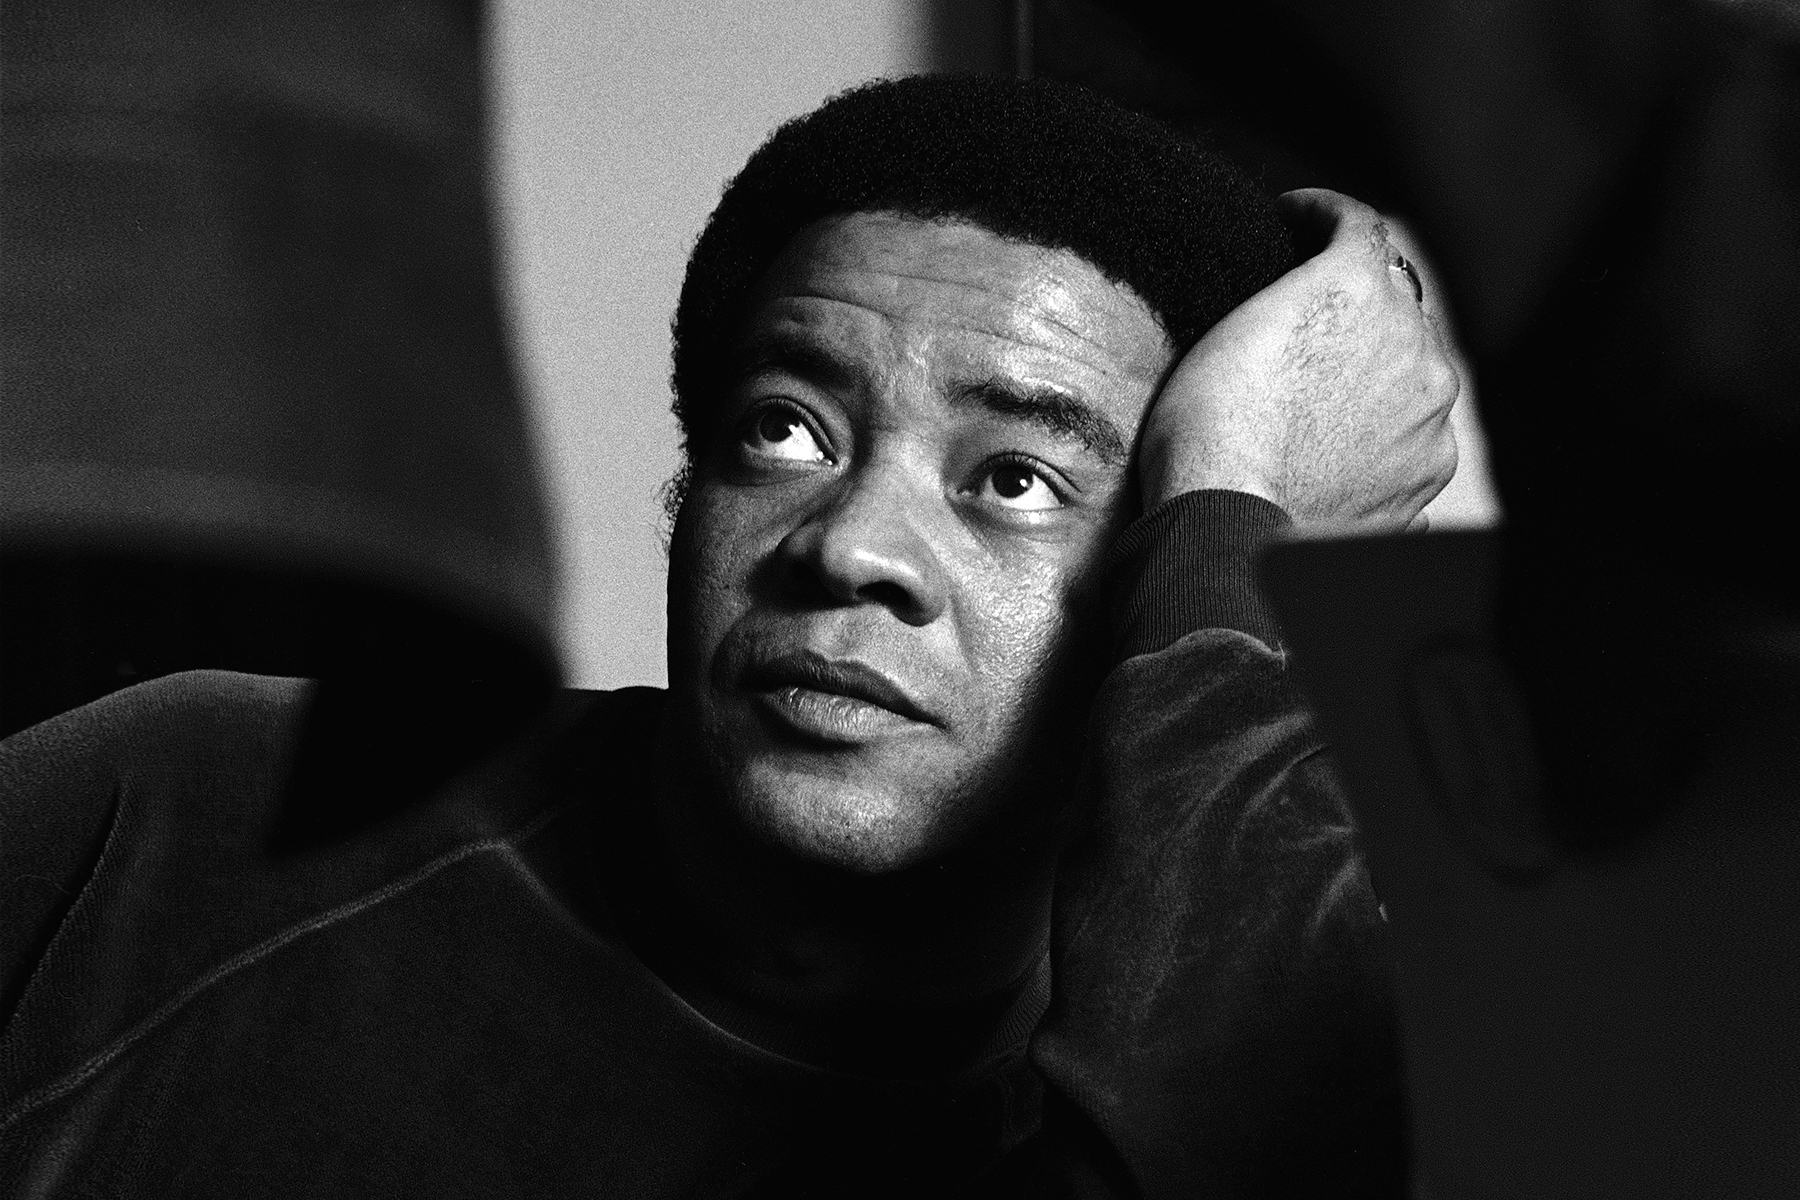 Bill Withers' Essential Songs: 'Lean on Me,' 'Use Me,' and More ...